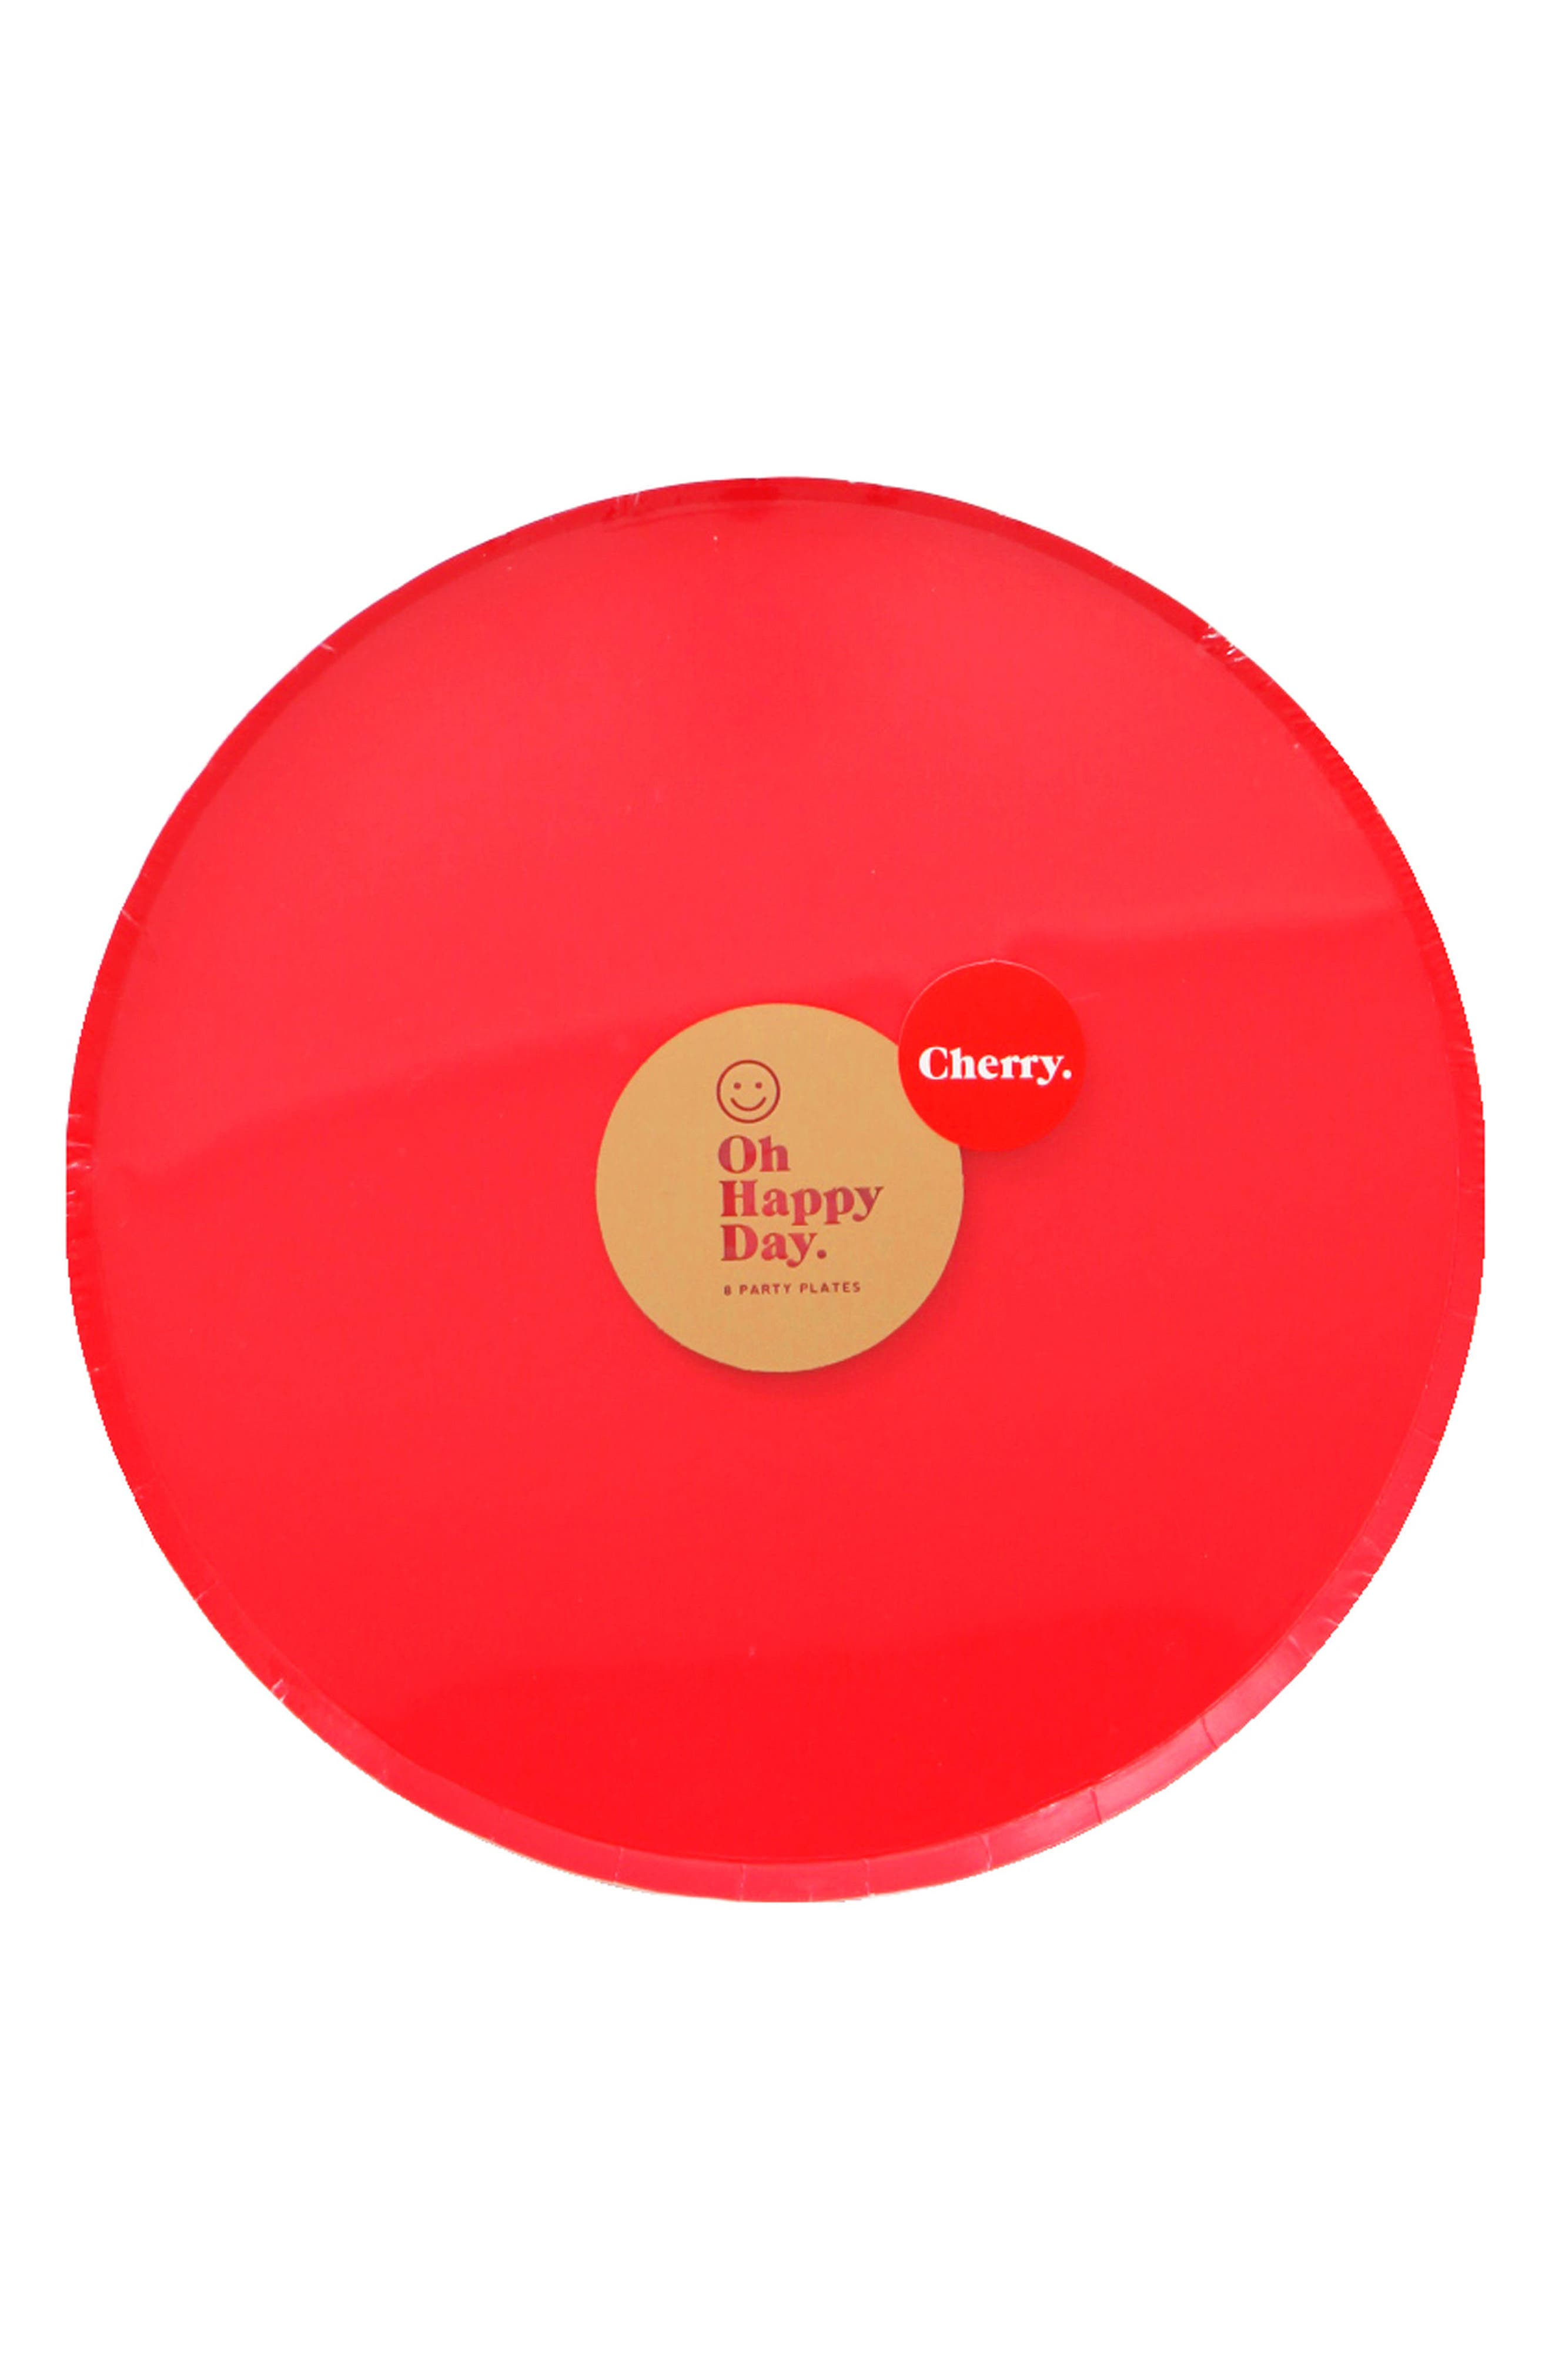 Oh Happy Day Set of 8 Cherry 9-Inch Paper Party Plates